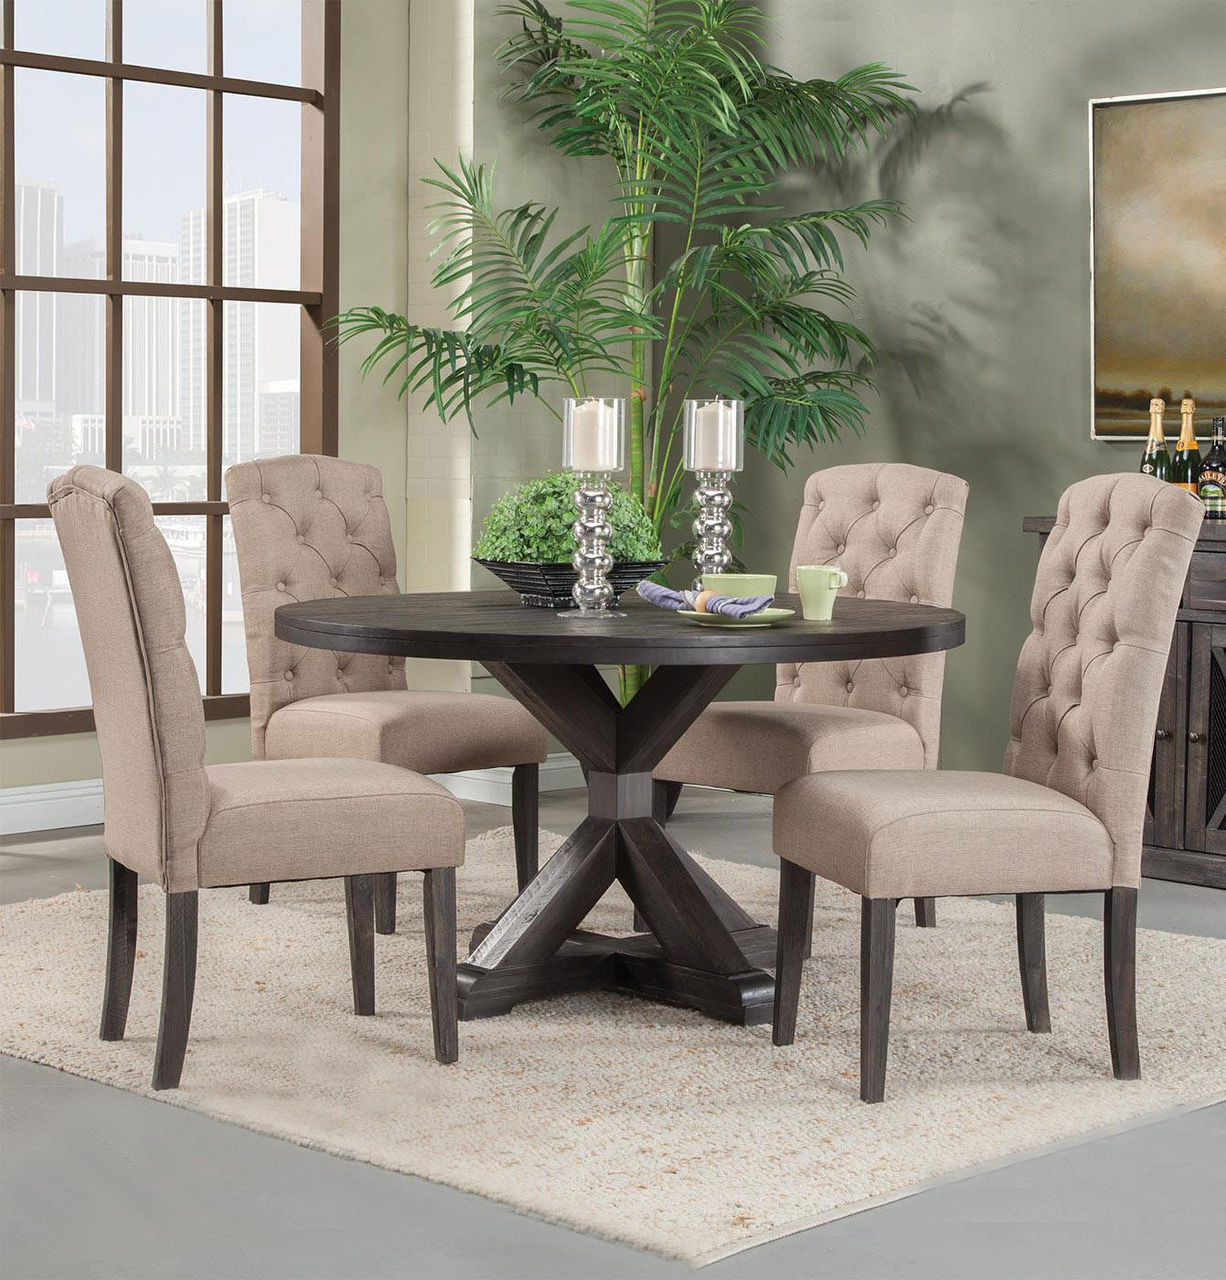 Alpine Newberry 54 Round Table With Chairs Set In Salvaged Grey